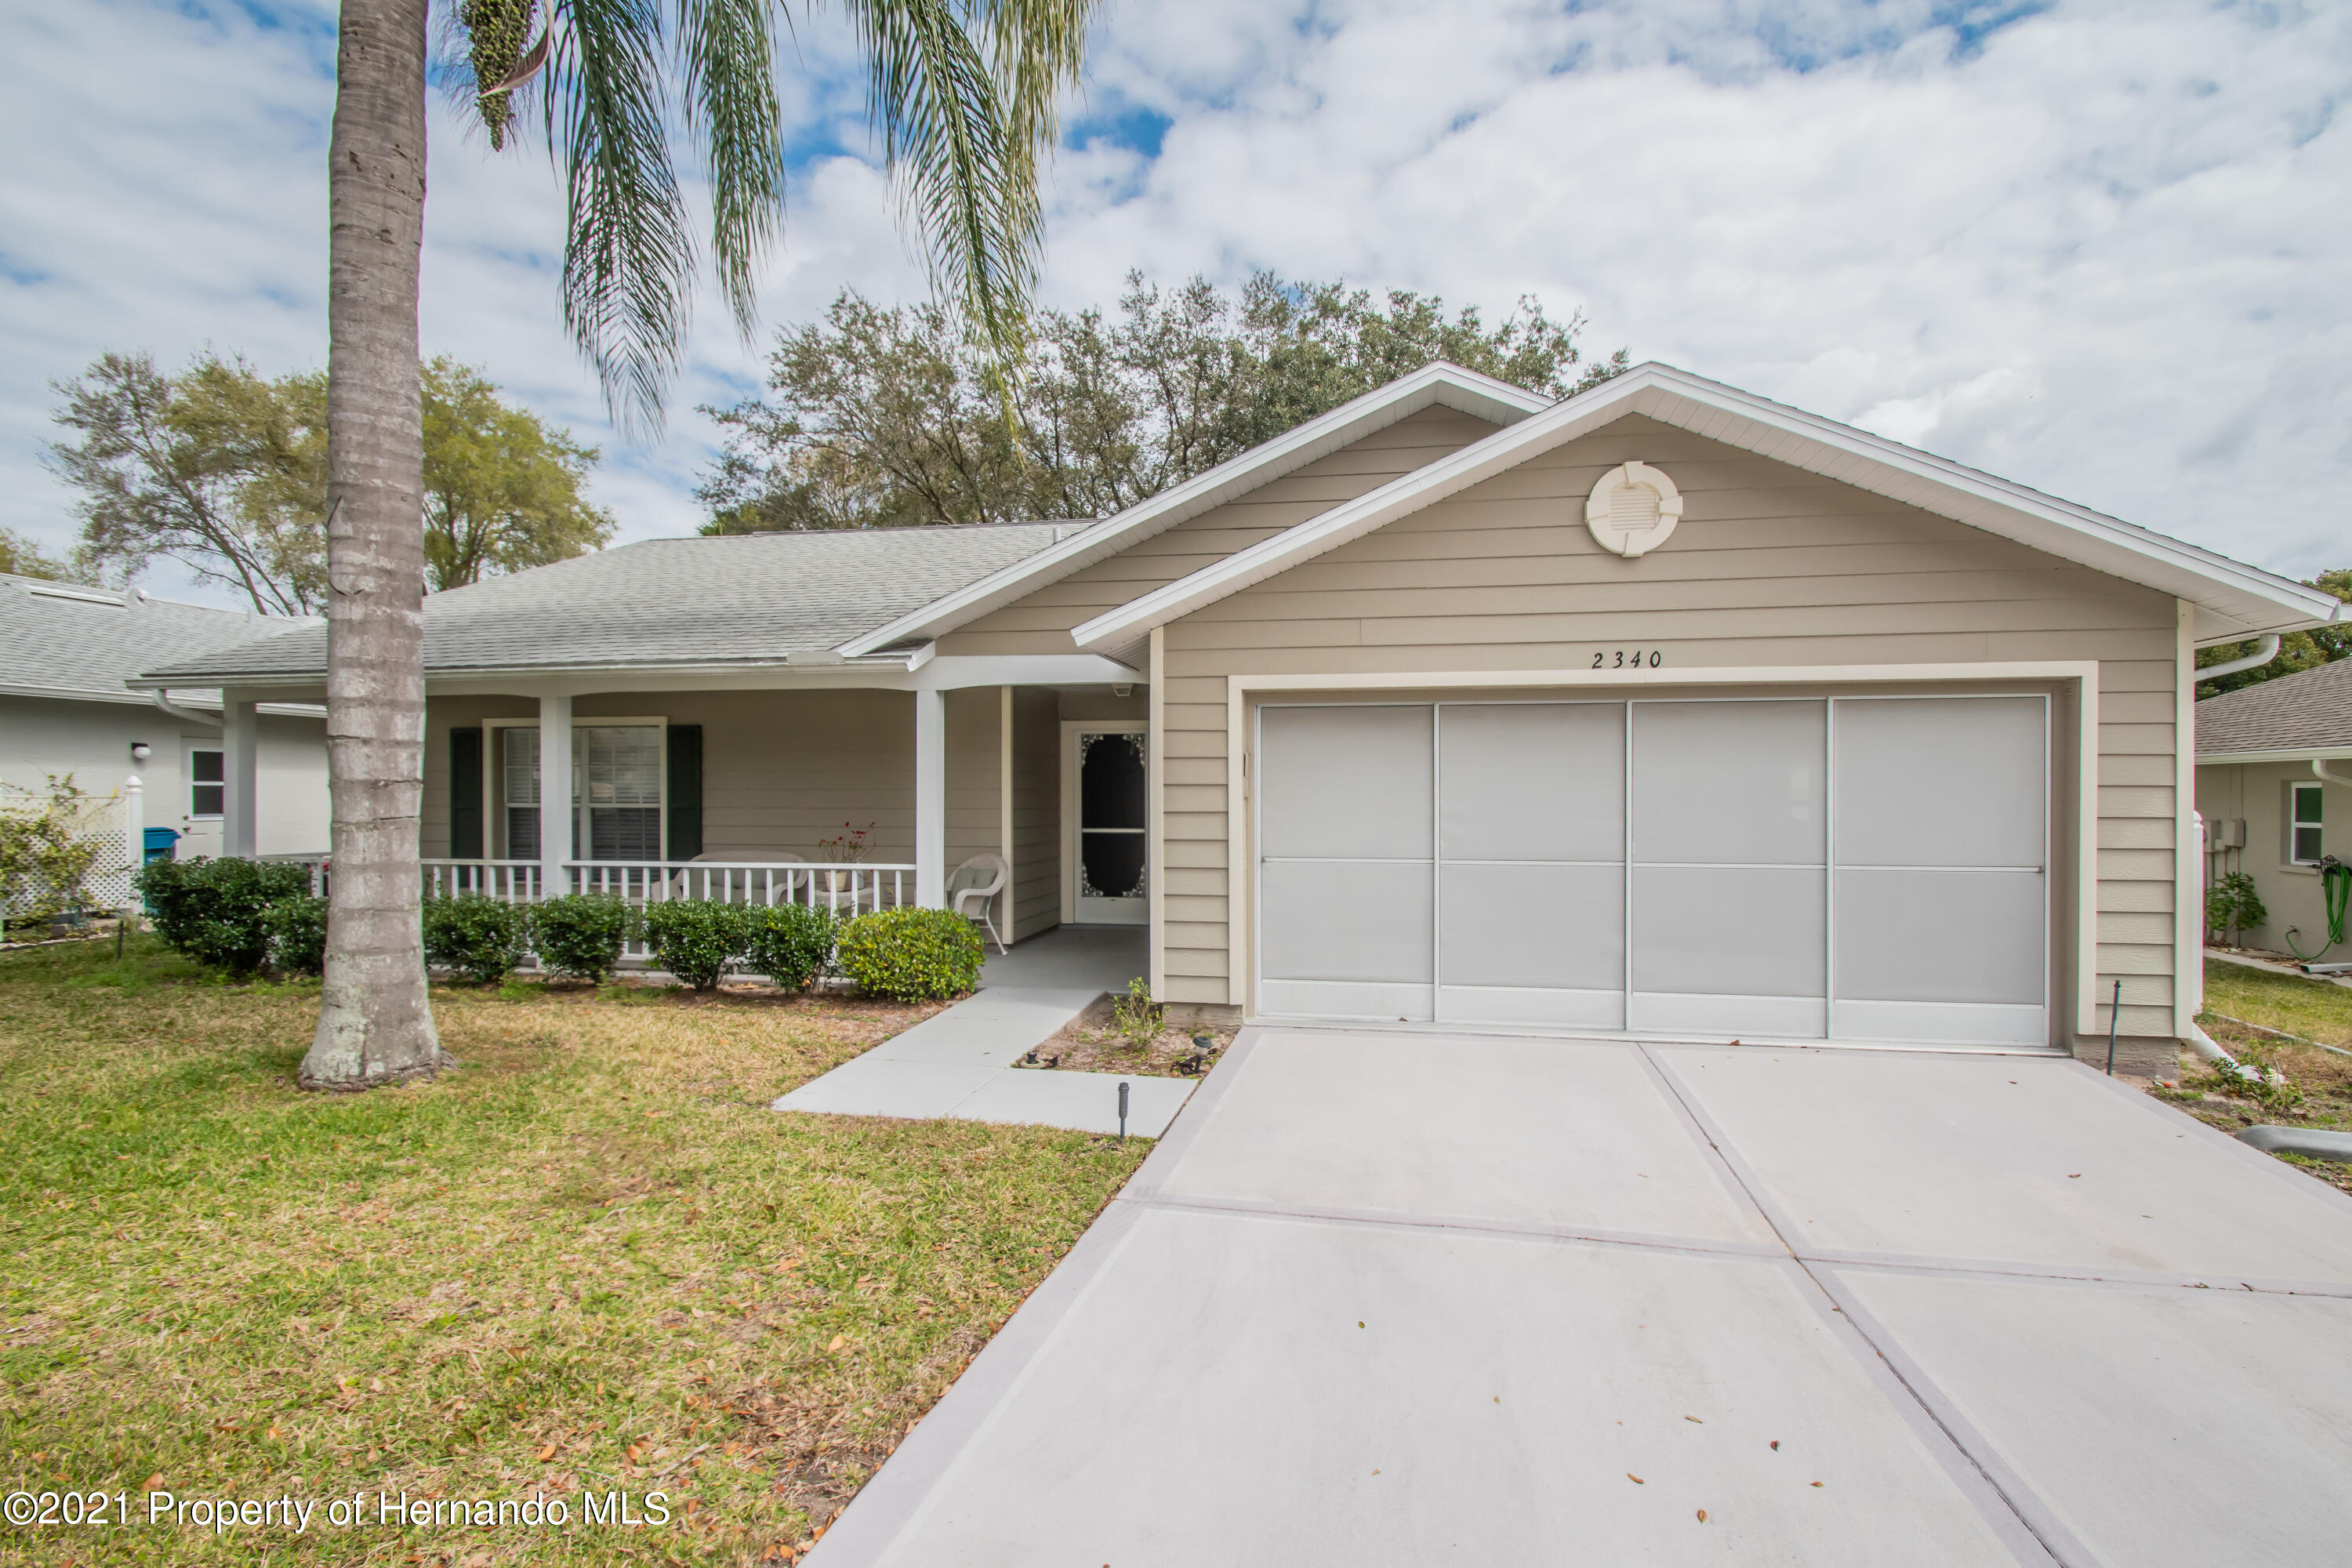 Details for 2340 Terrace View Lane, Spring Hill, FL 34606